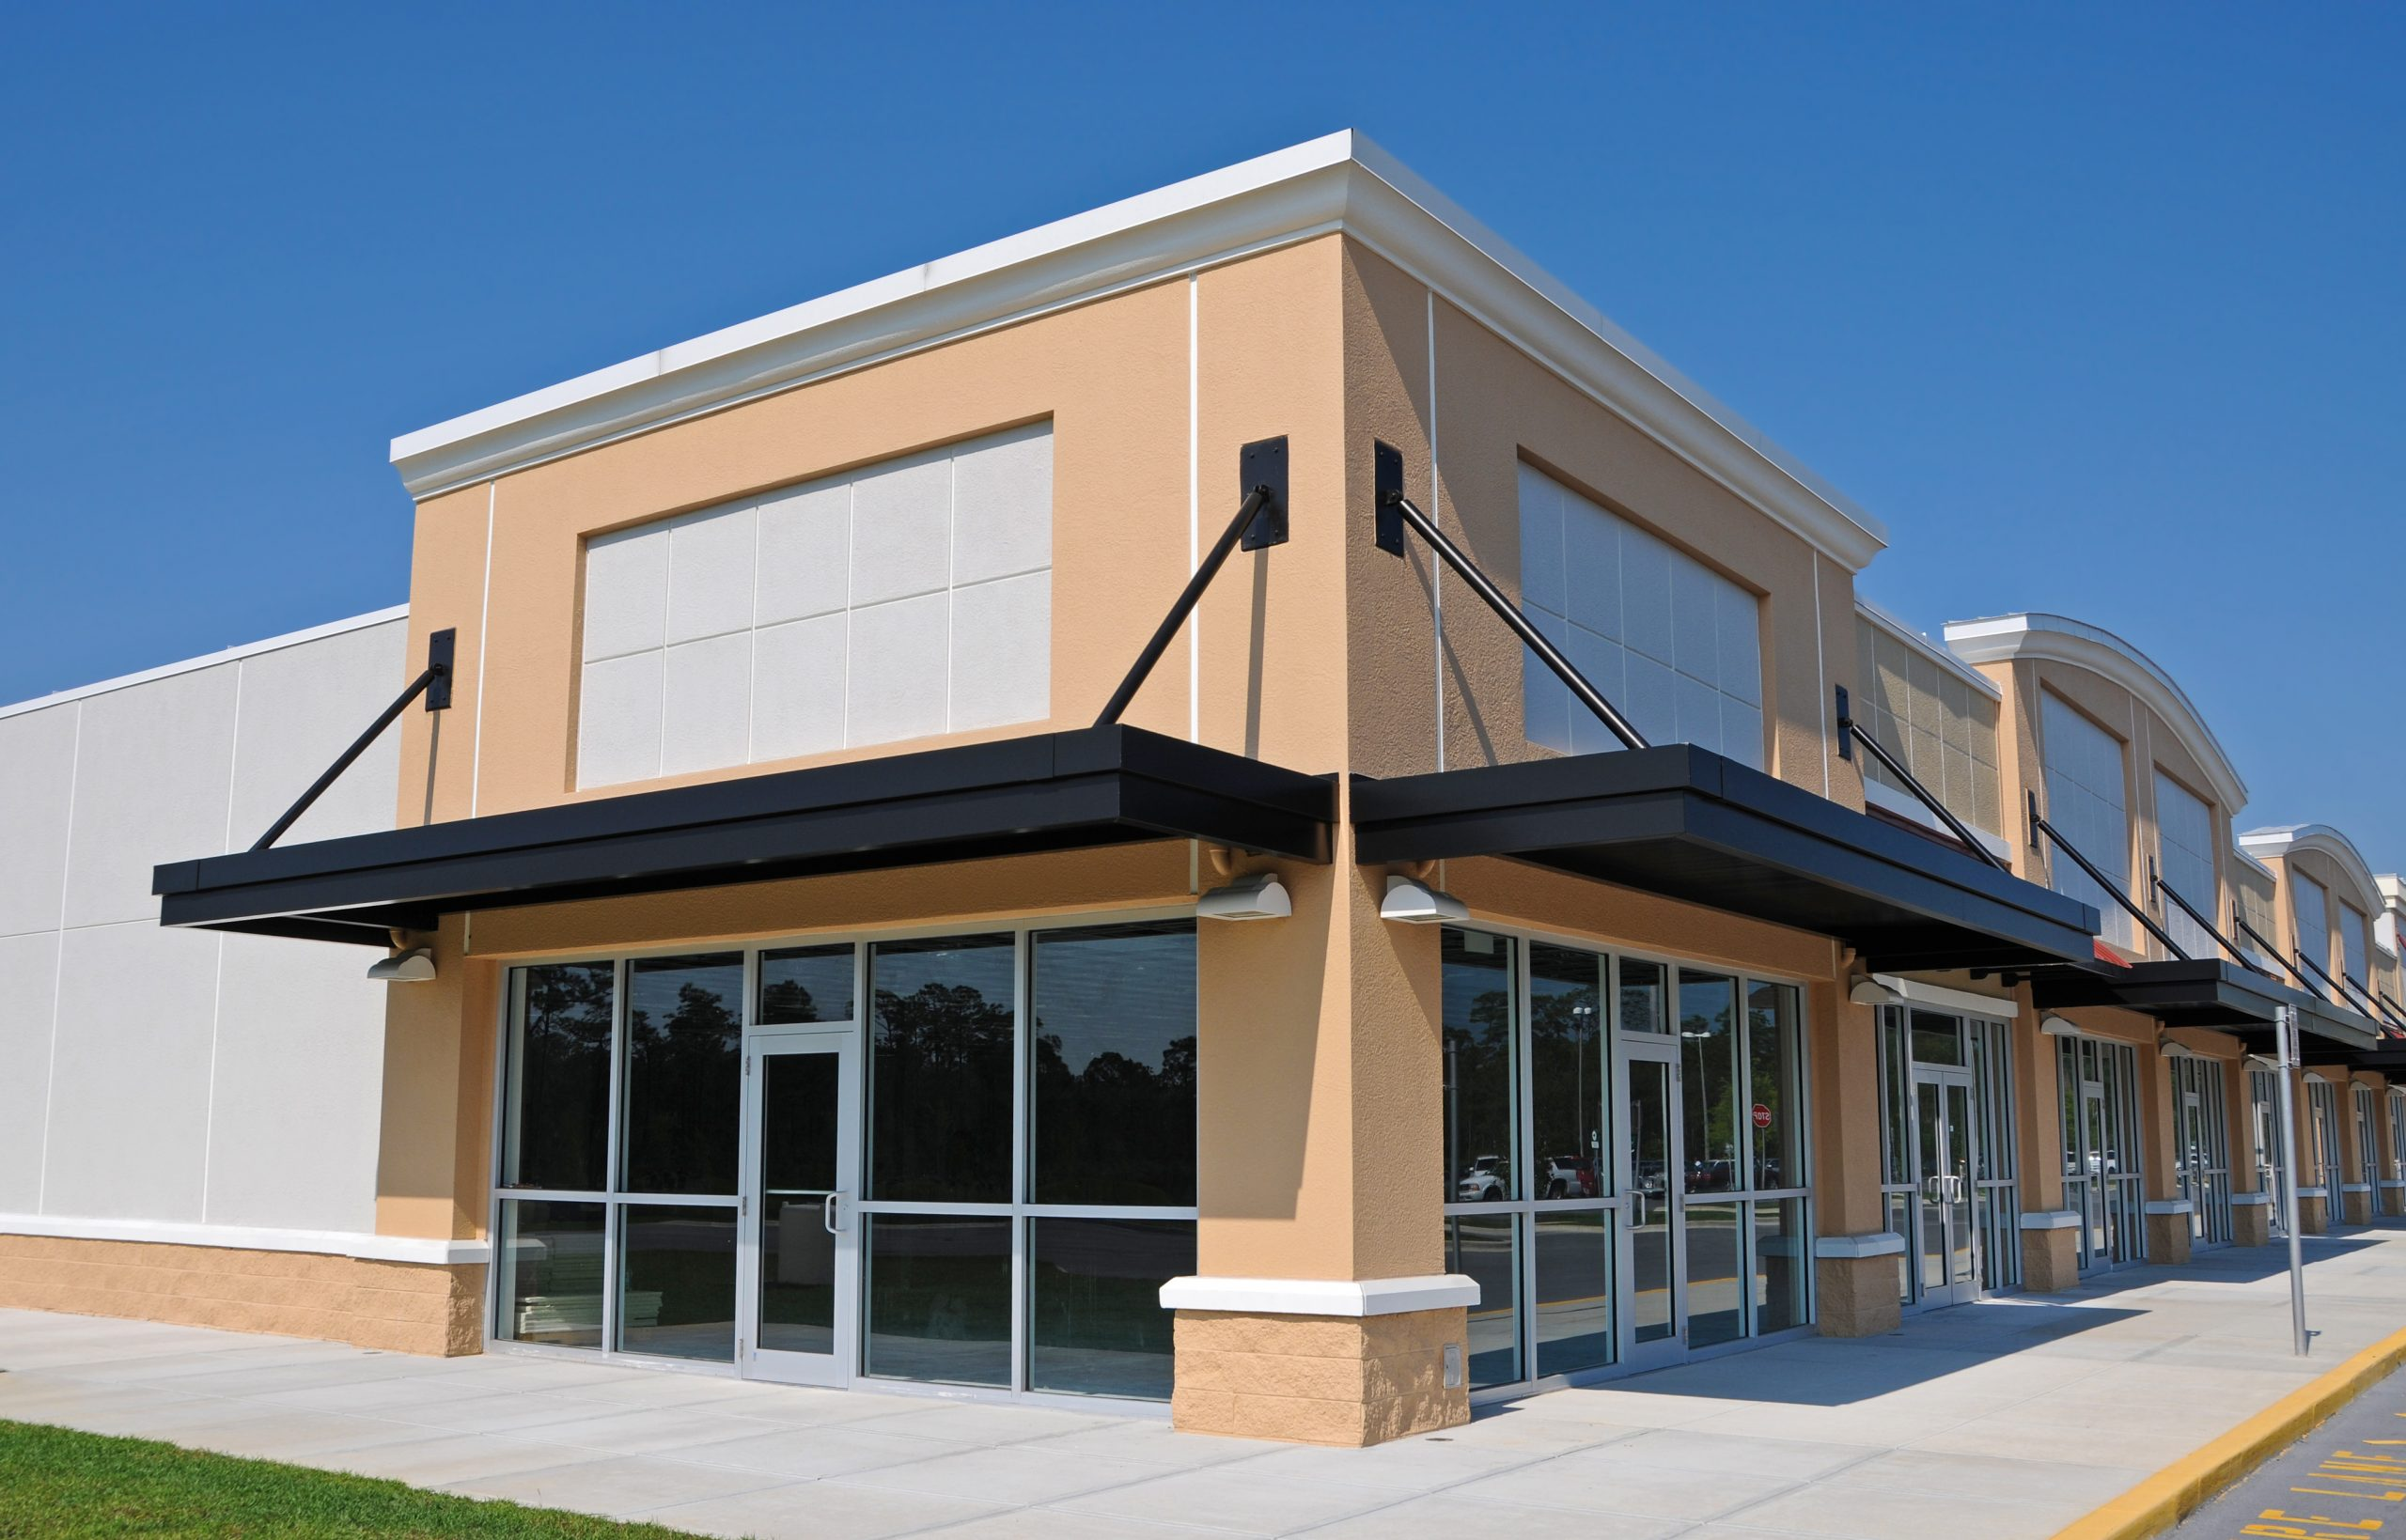 Why Invest in Commercial Awning